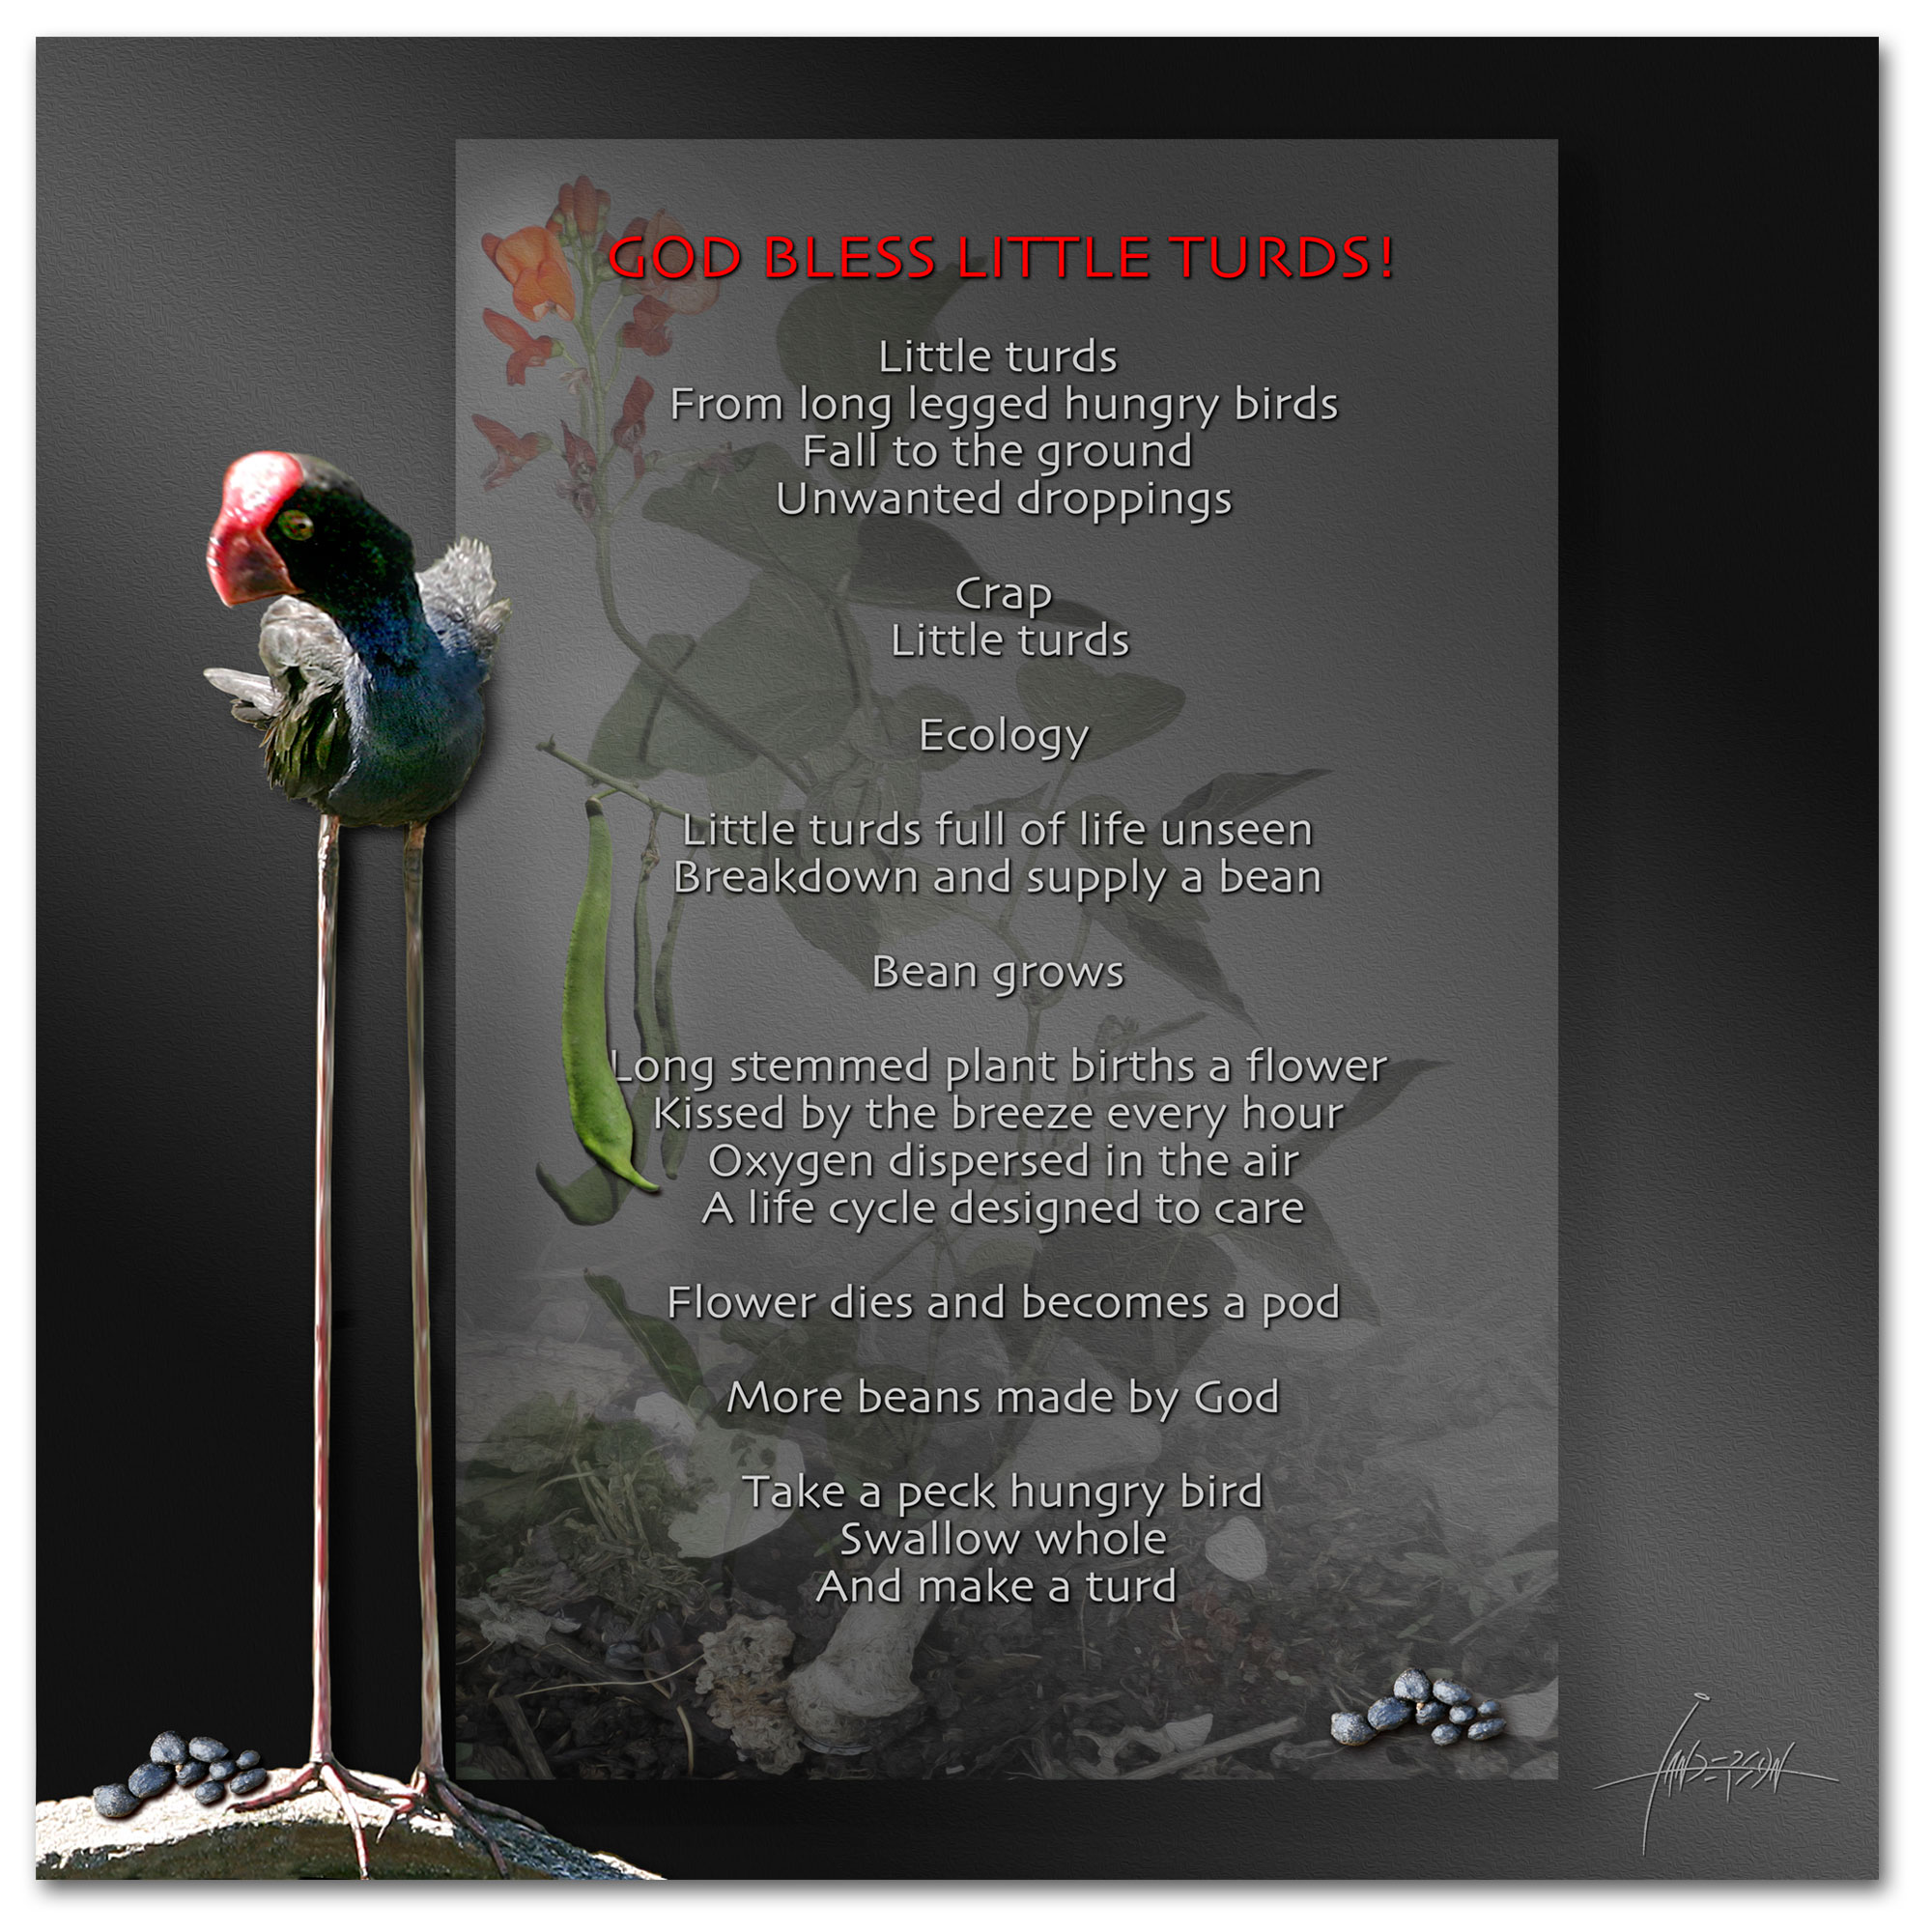 God bless little turds - A poem with an ecological twist by Ian Anderson